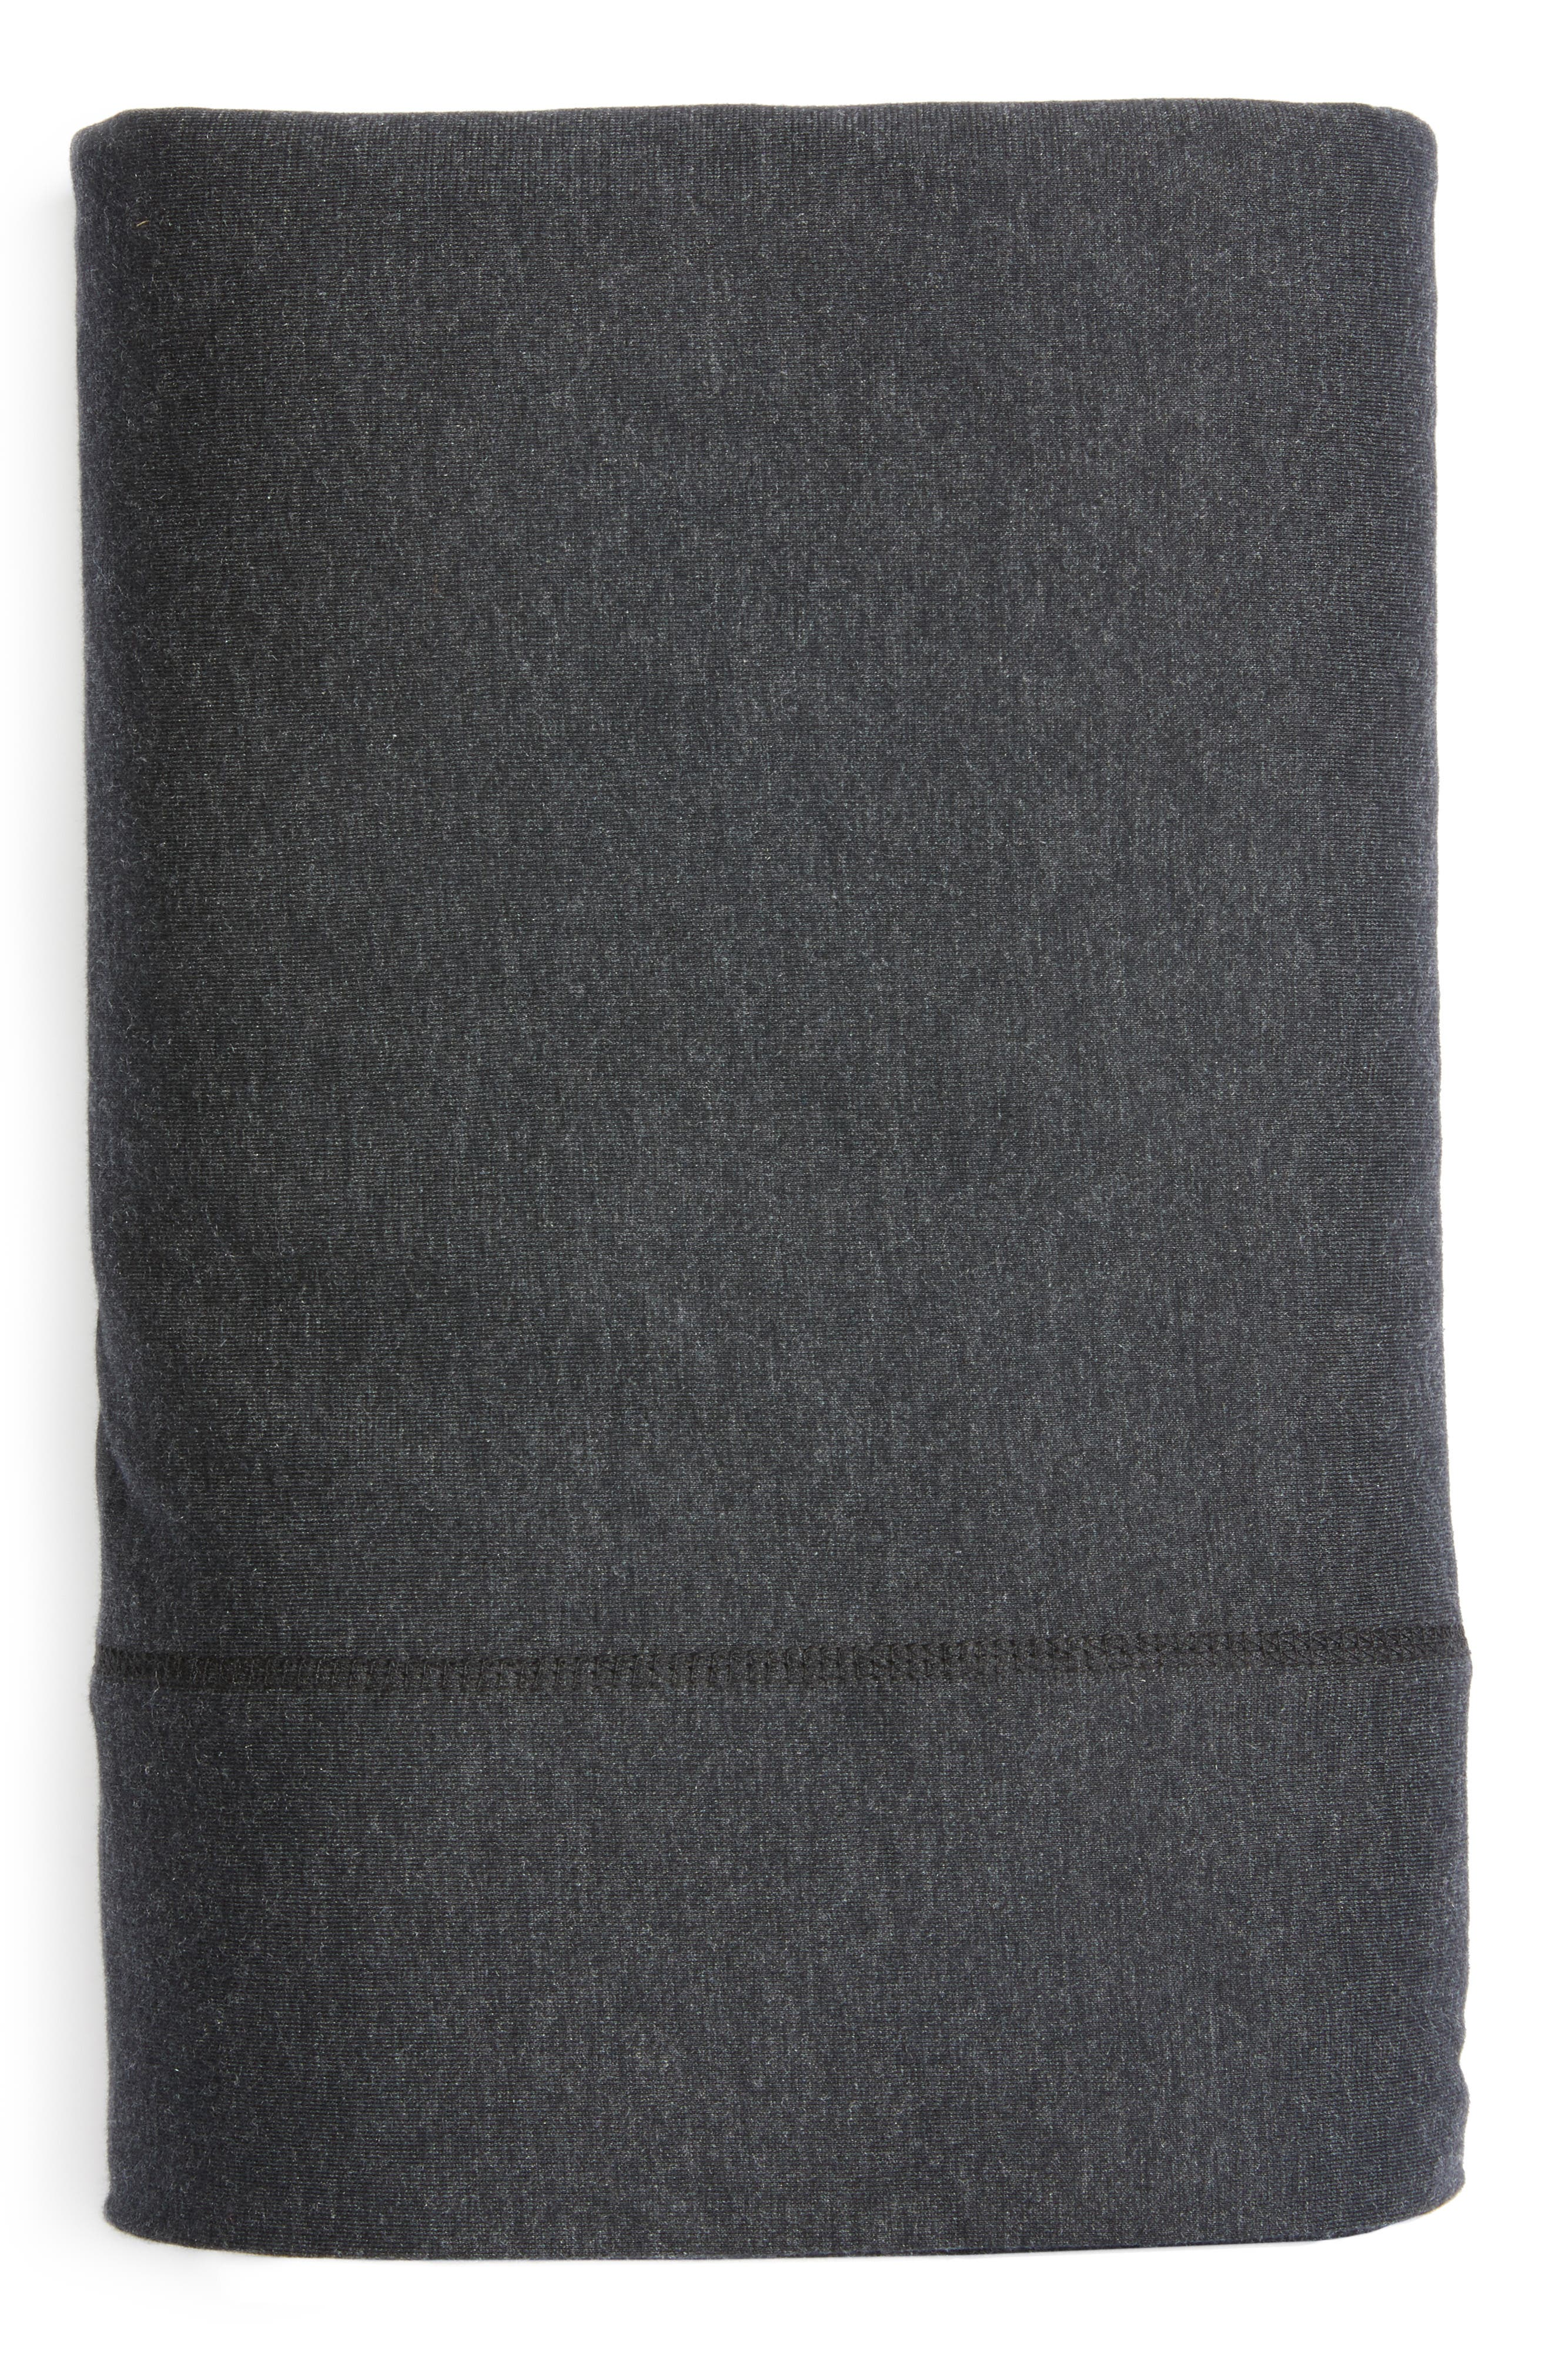 Cotton & Modal Jersey Flat Sheet,                         Main,                         color, Muted Black